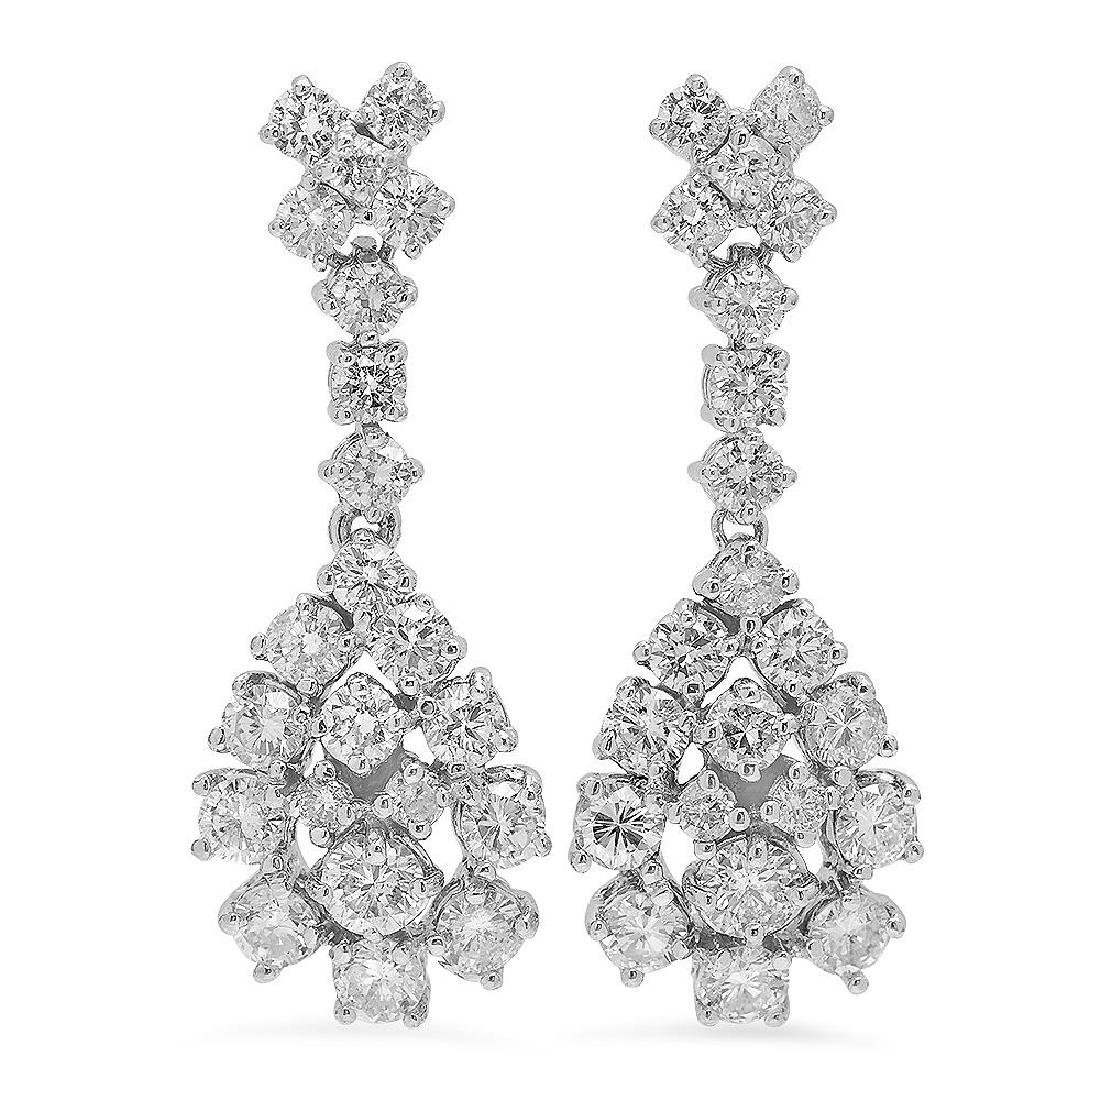 14K Gold 3.07ct Diamond Earrings